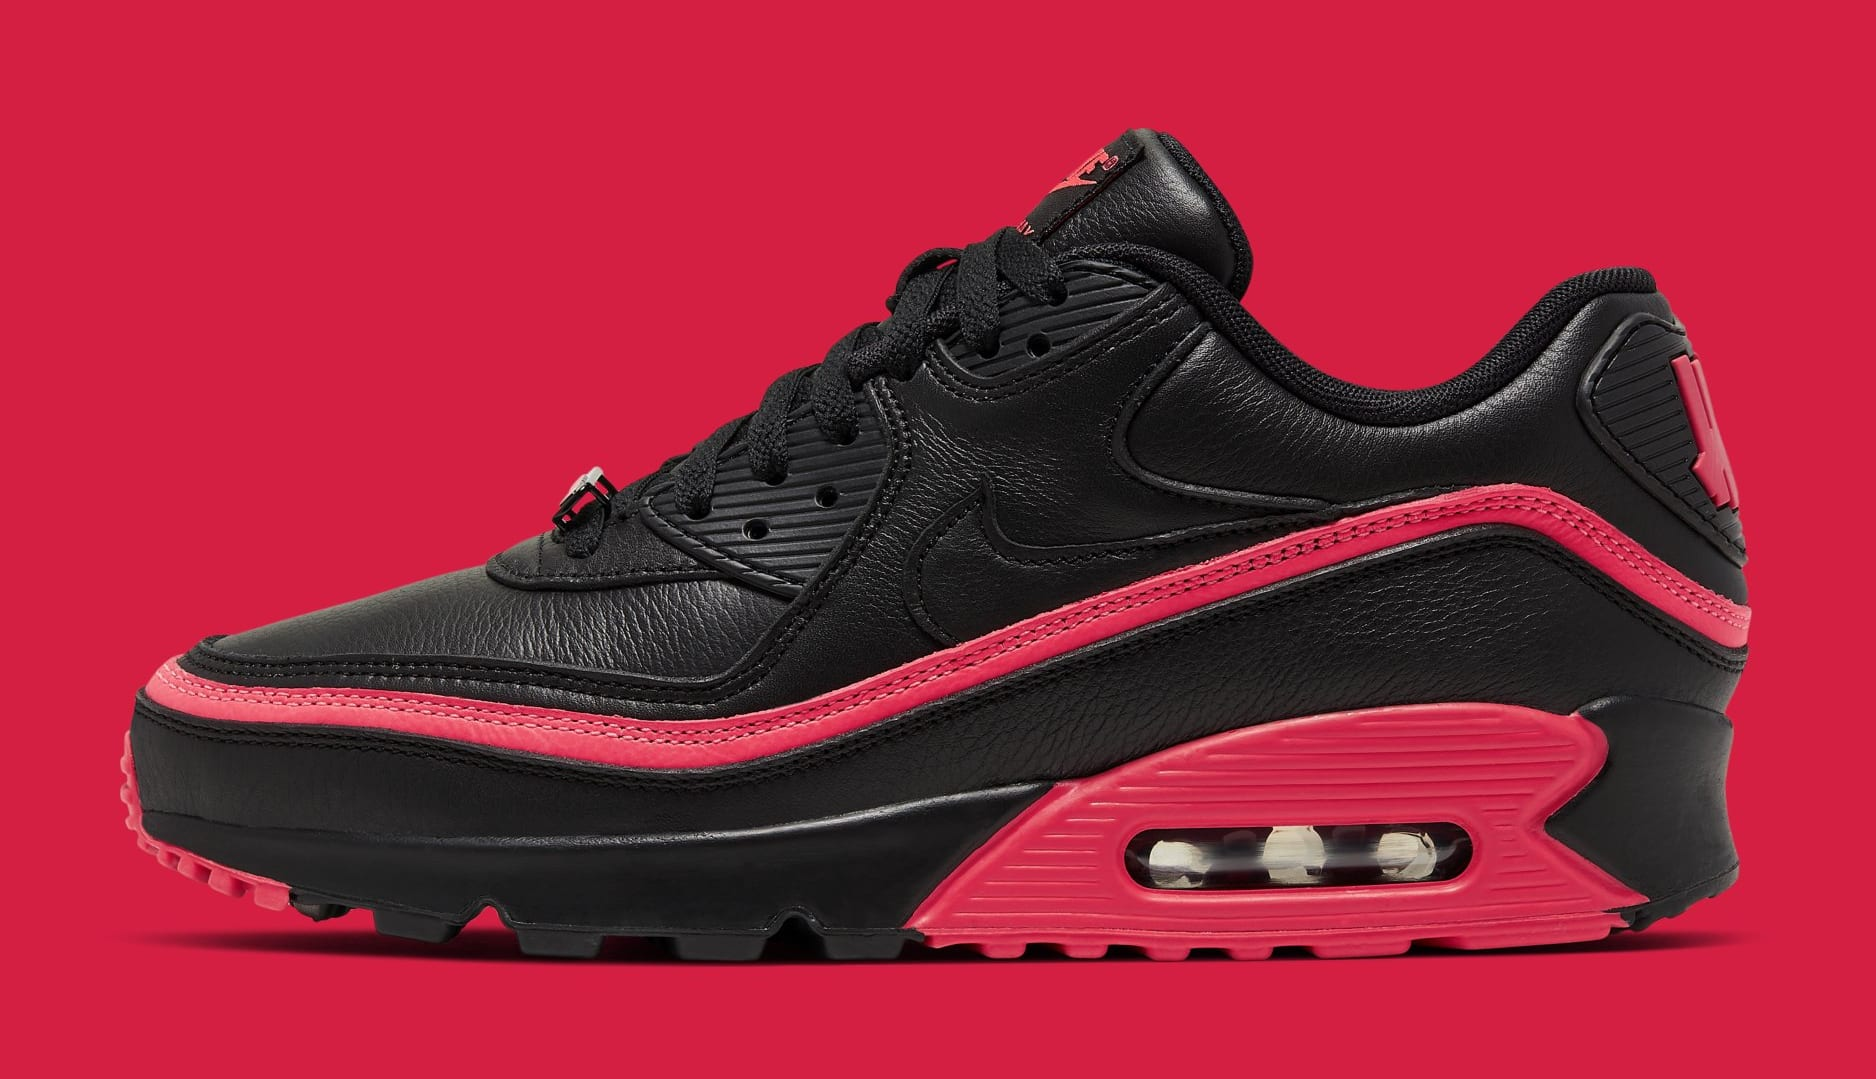 undefeated-nike-air-max-90-black-solar-red-cj7197-003-lateral